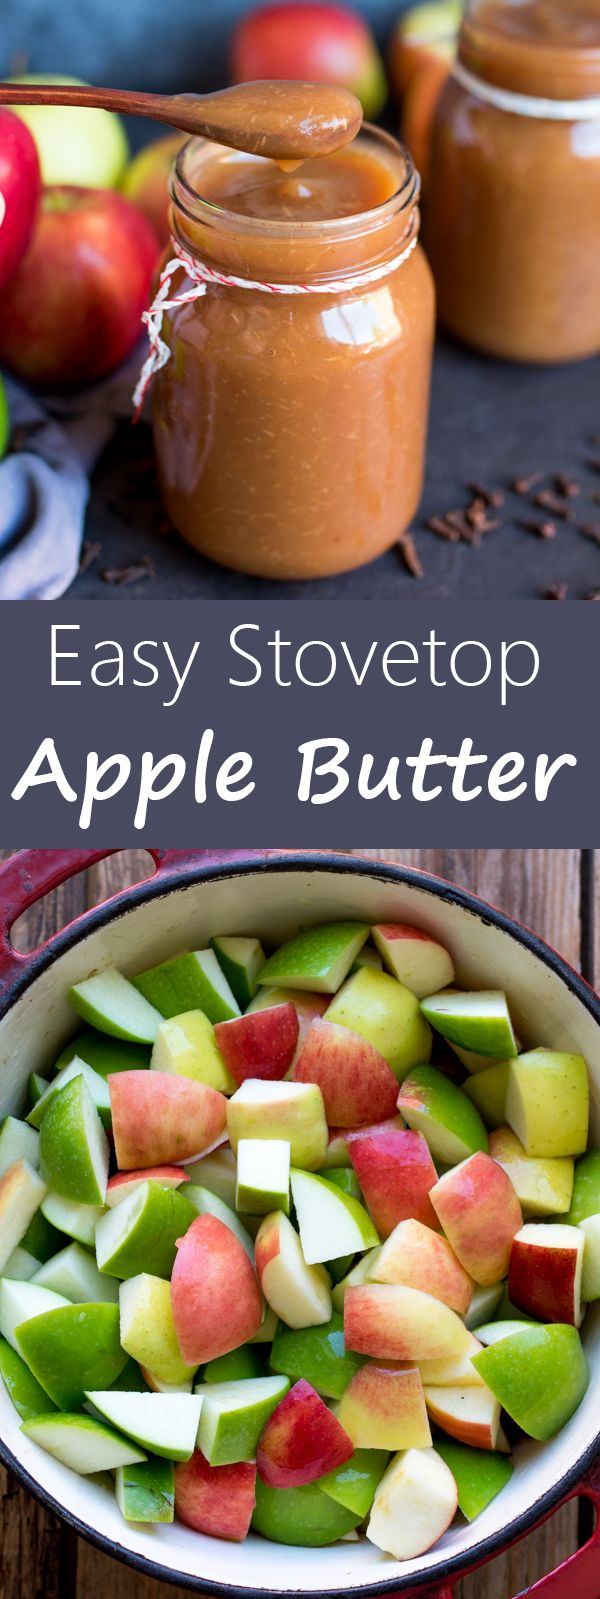 easy-stovetop-apple-butter-pin.jpg